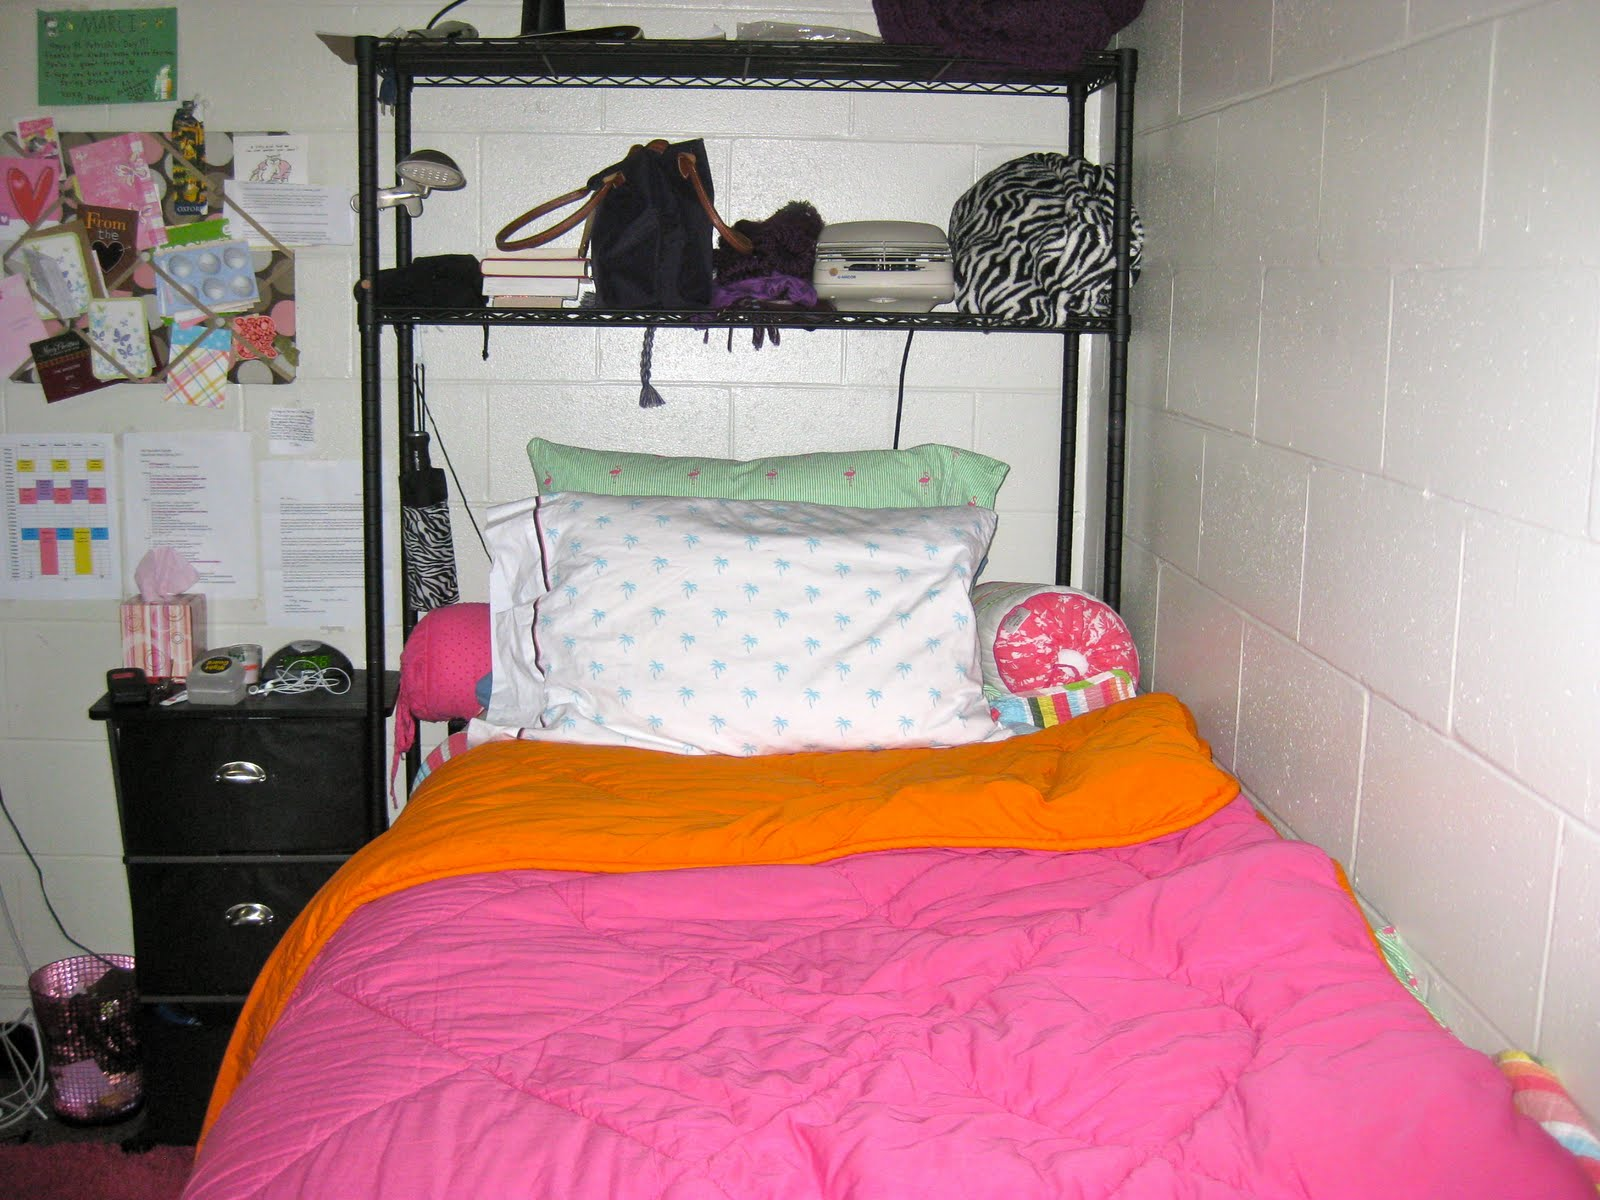 Dorm Room Over Bed Shelves 2018 Best Dorm Room Over Bed